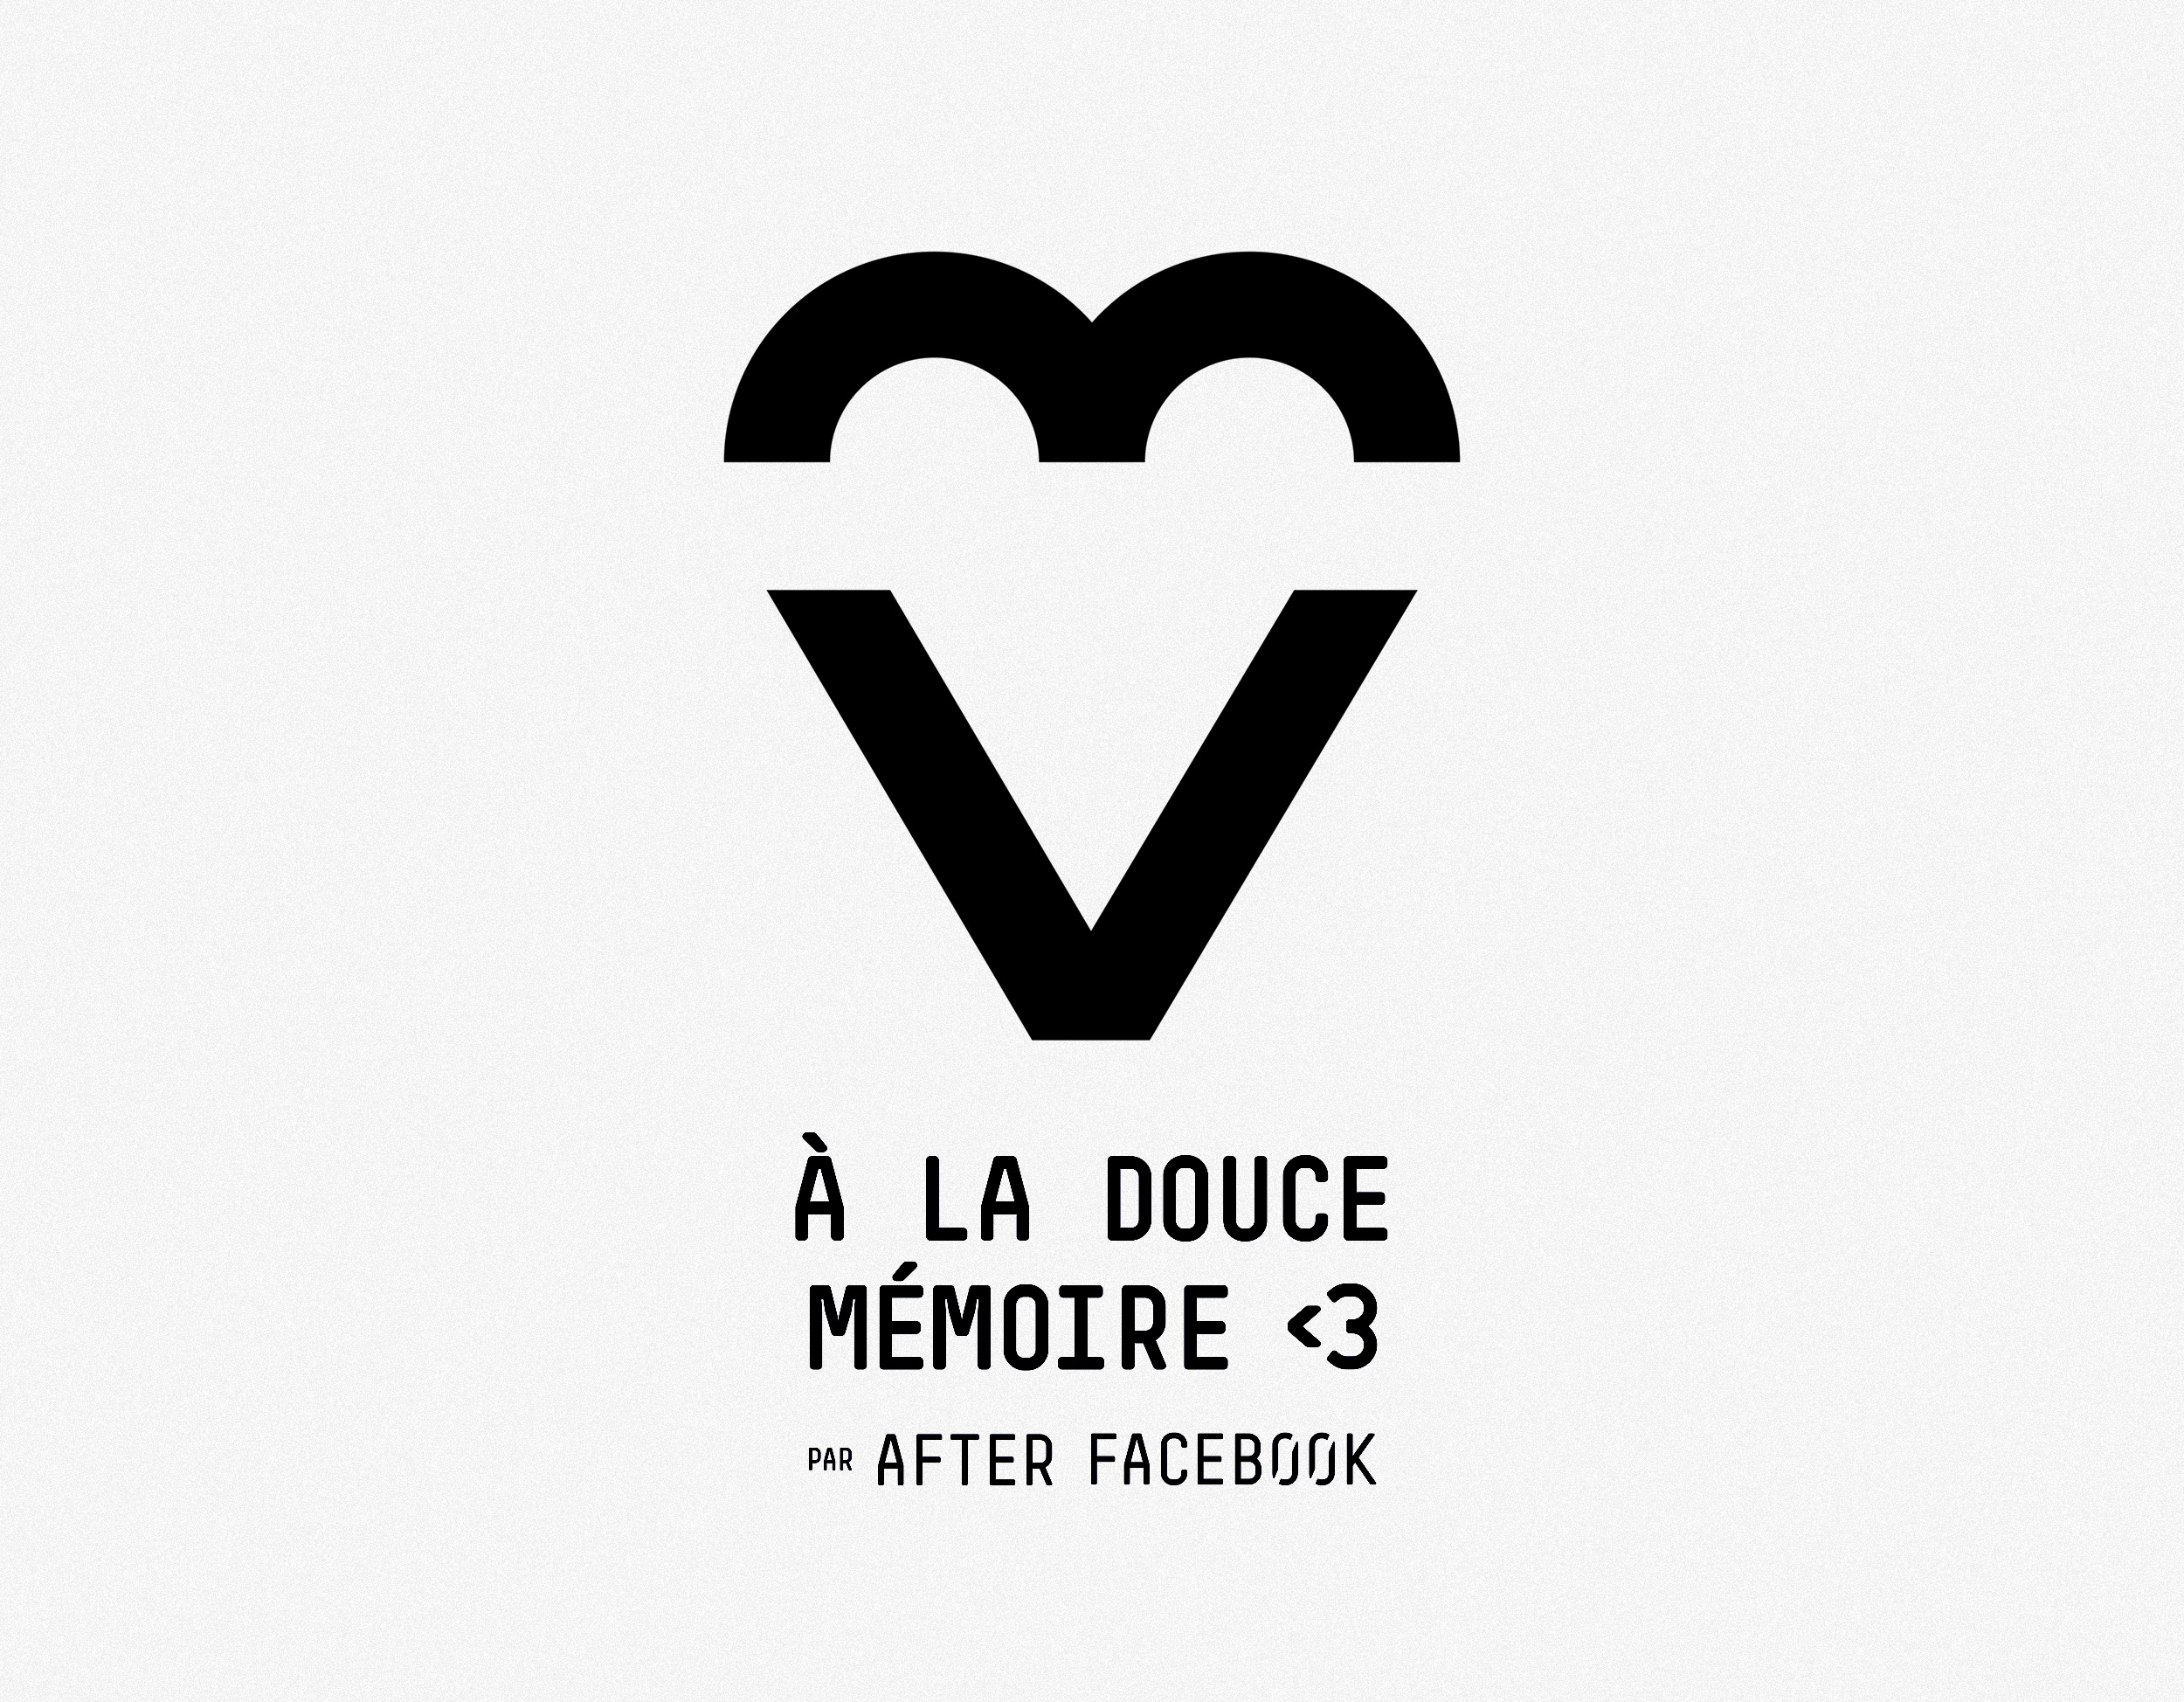 After-facebook_logo2